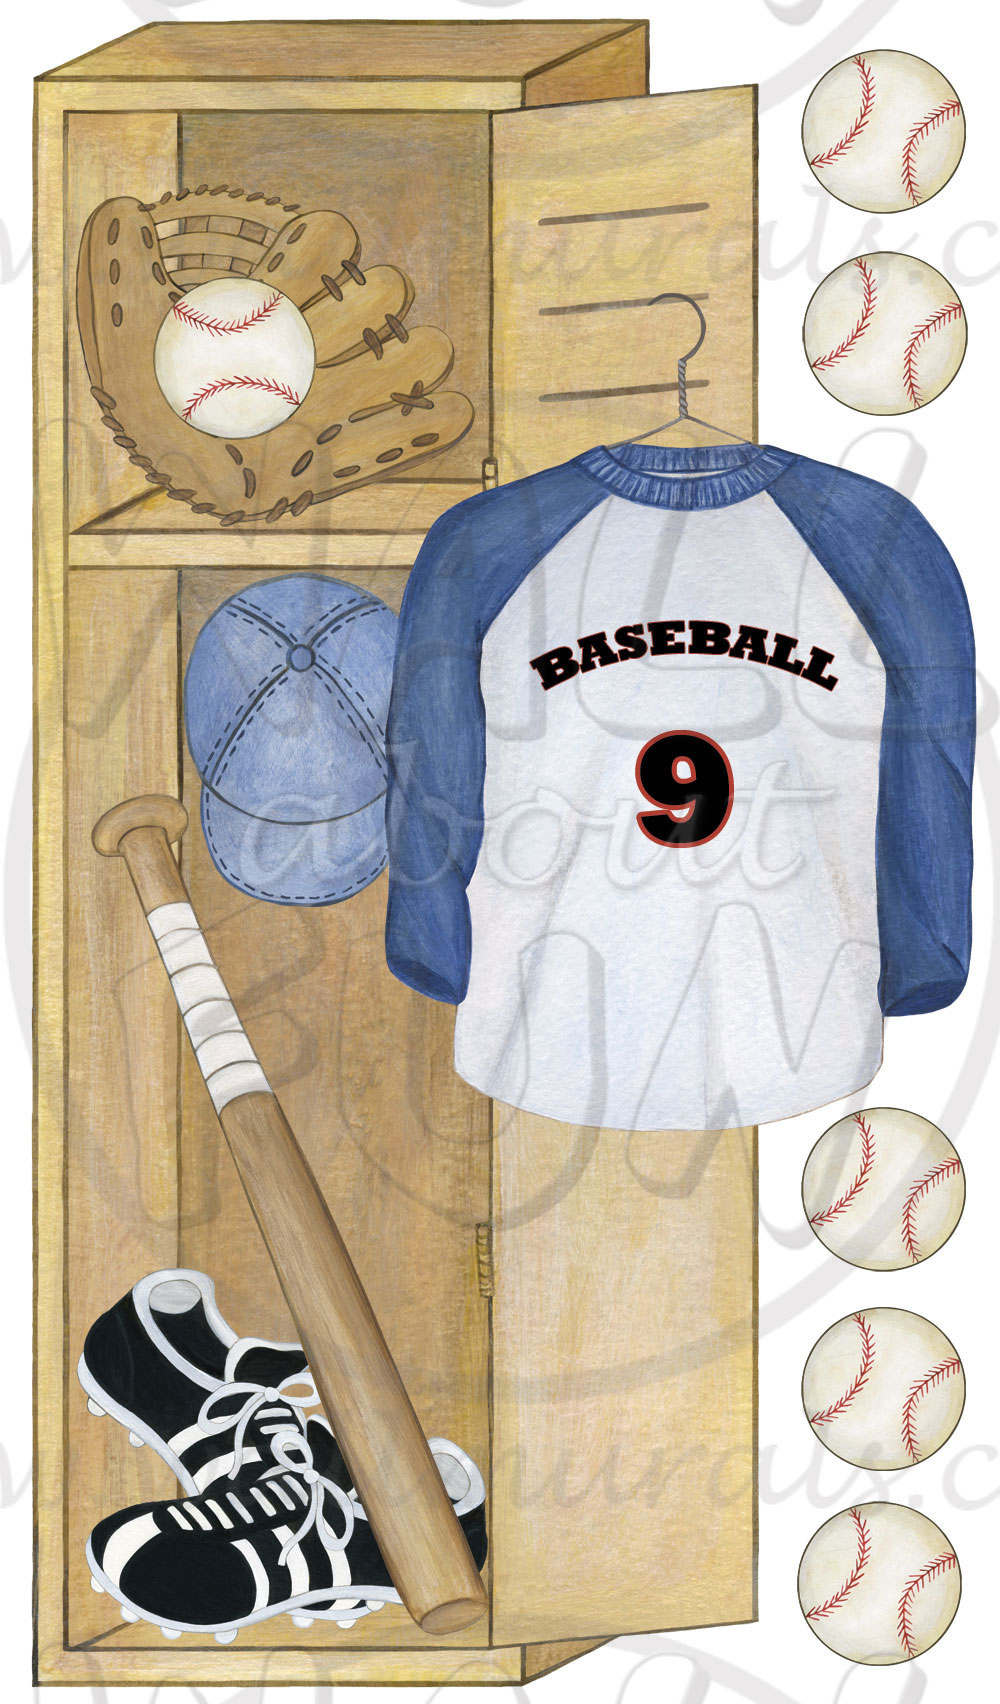 Baseball Wall Murals Wallpaper Baseball Locker Wall Decals